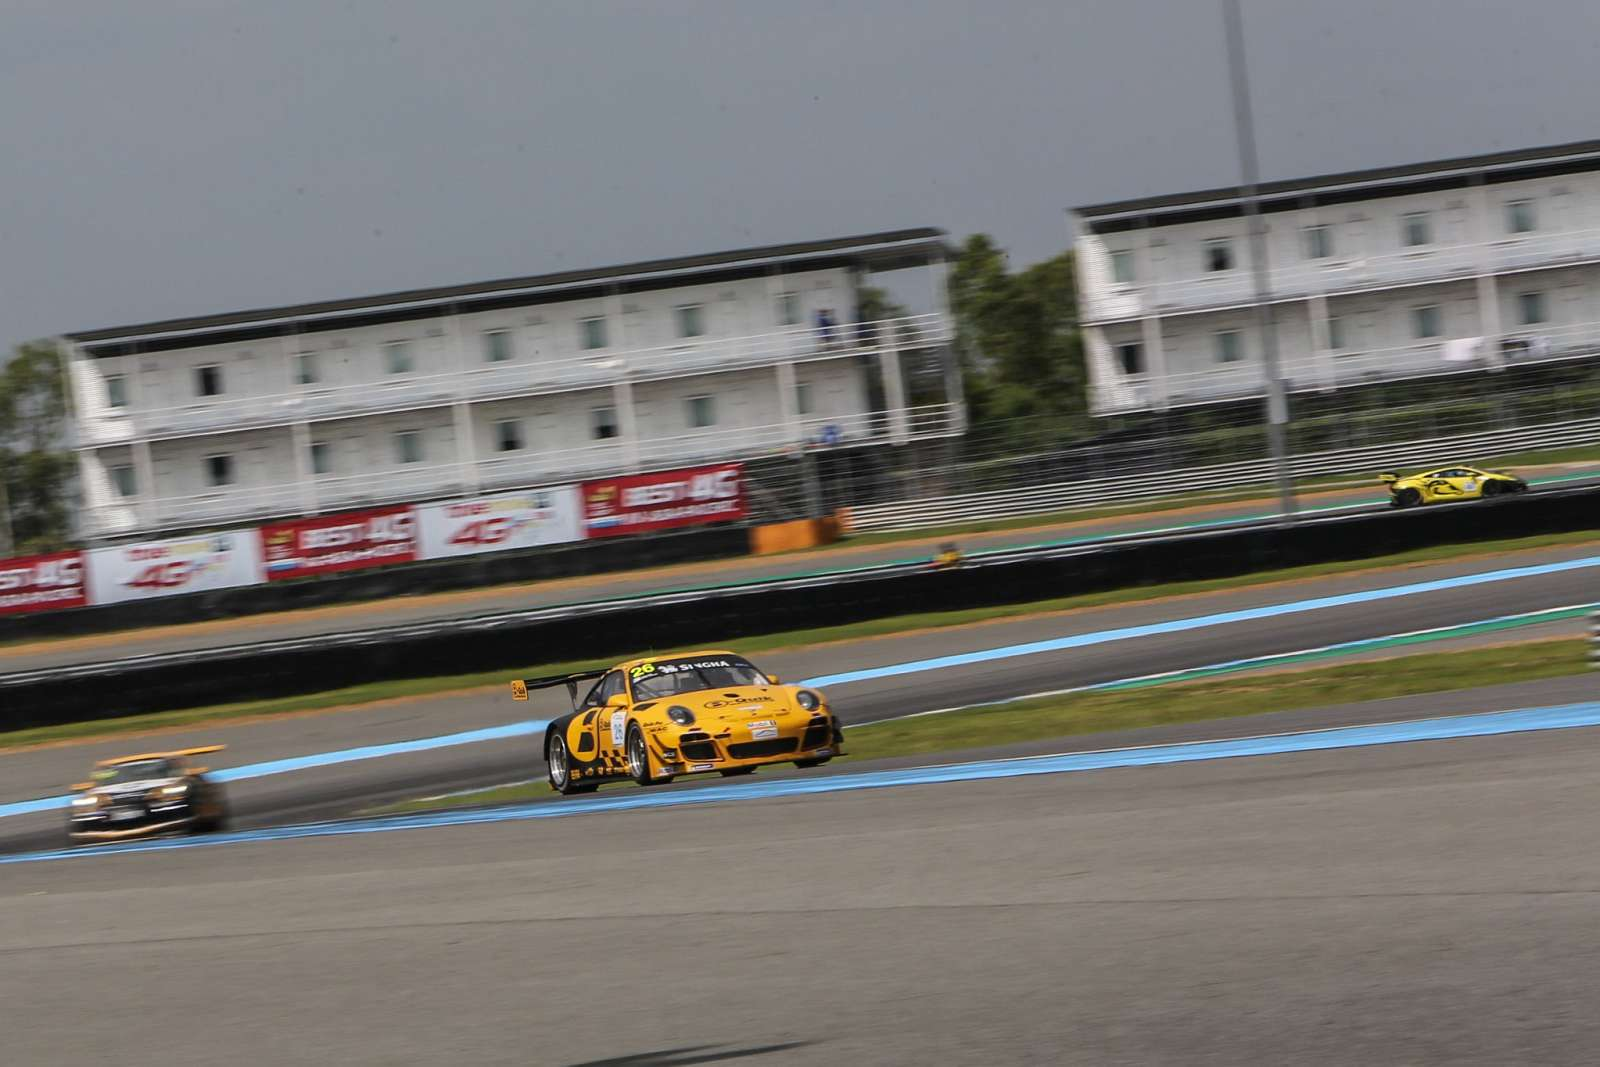 peter-kox-championship-winning-weekend-for-B-QUIK-in-buriram-07